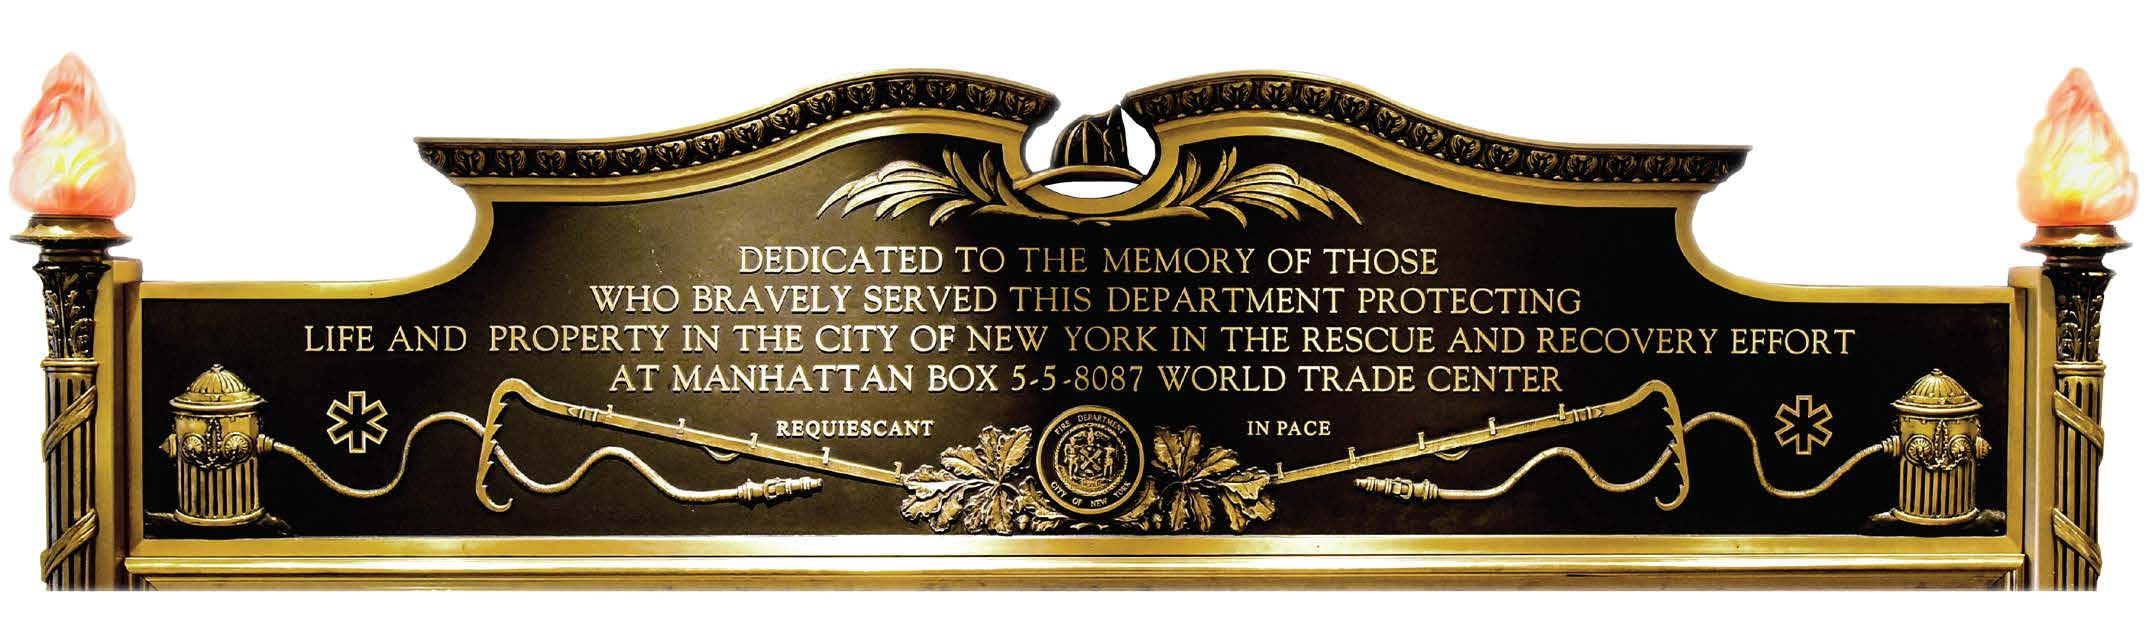 FDNY Adds 27 Names To Memorial Wall For Deaths Related To WTC Illness